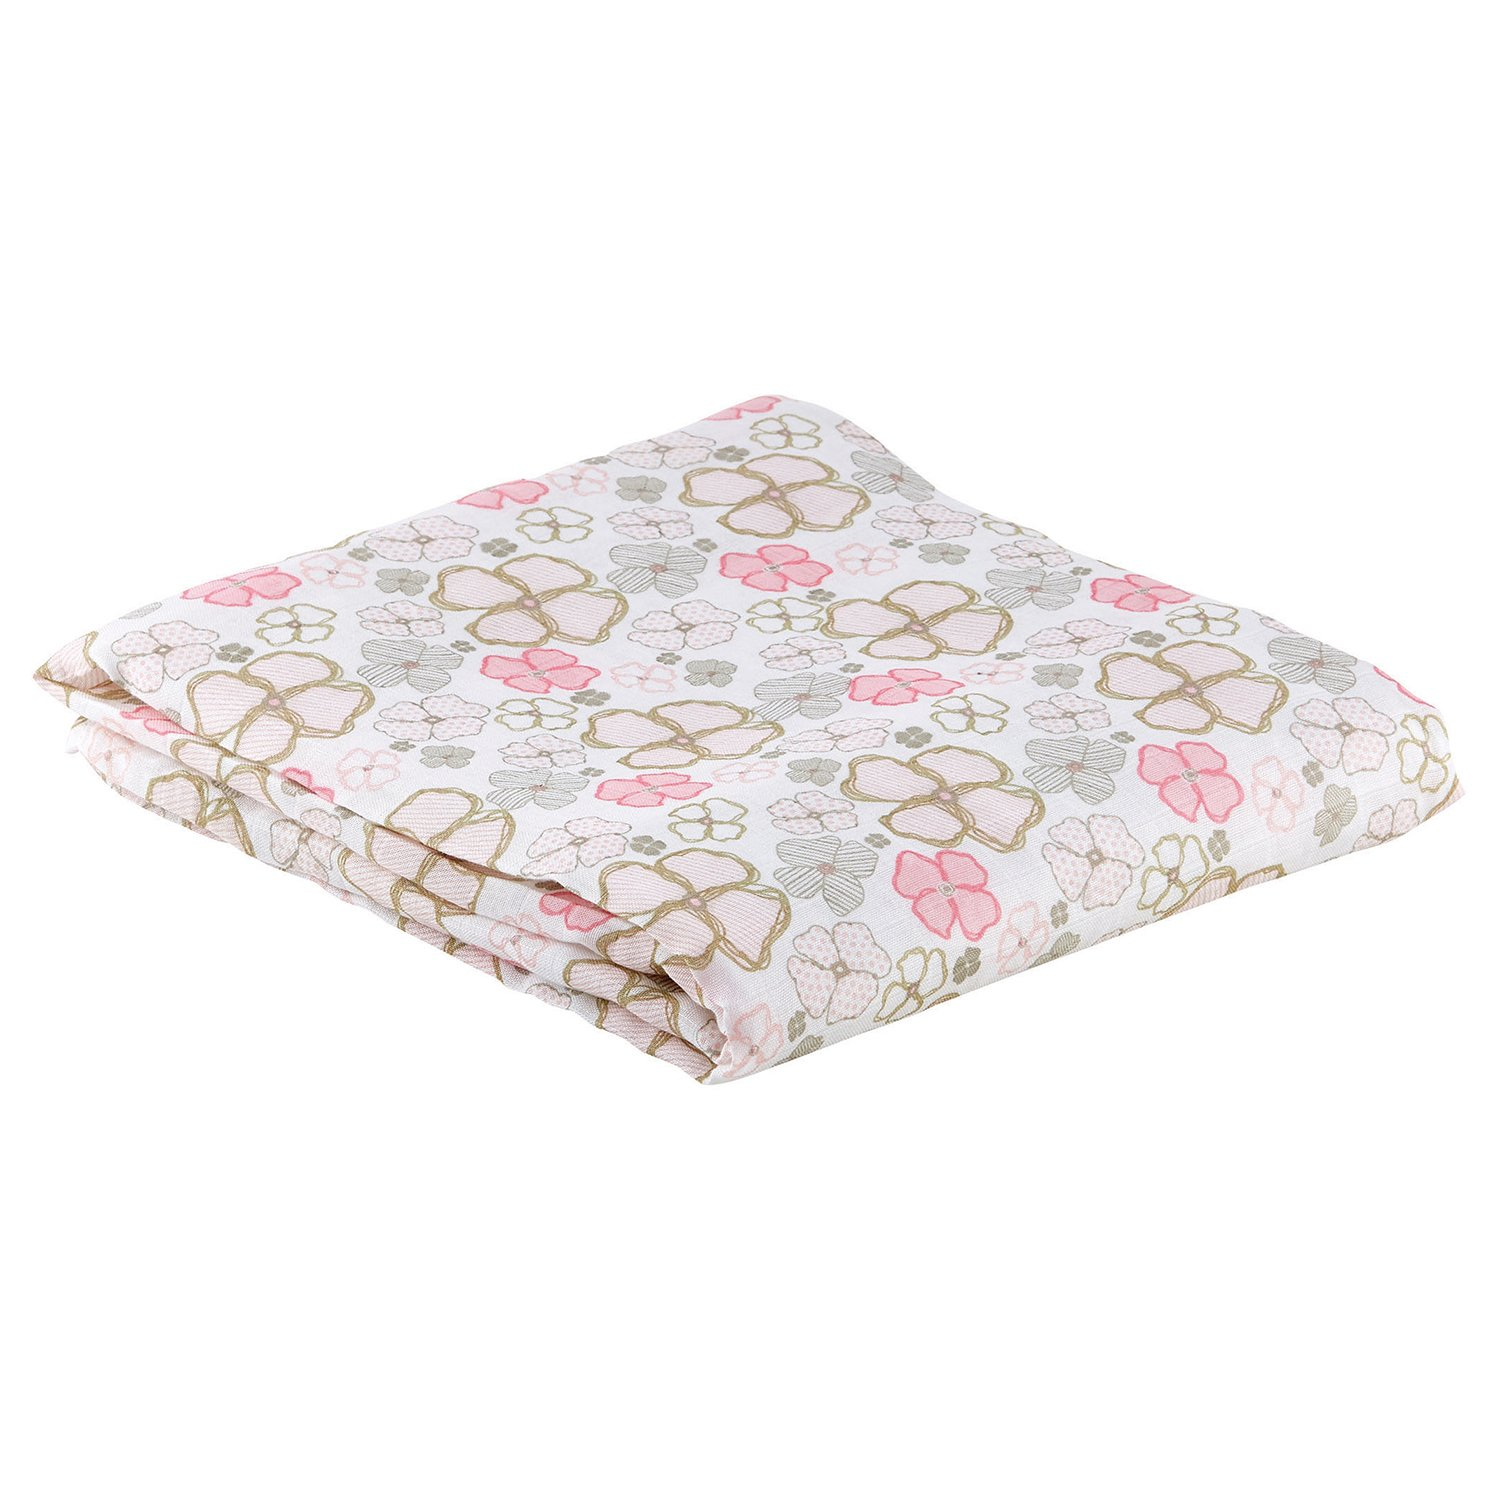 Stephan Baby Playful Posies Pink and Gray Floral Viscose Cotton Muslin Swaddle Blanket